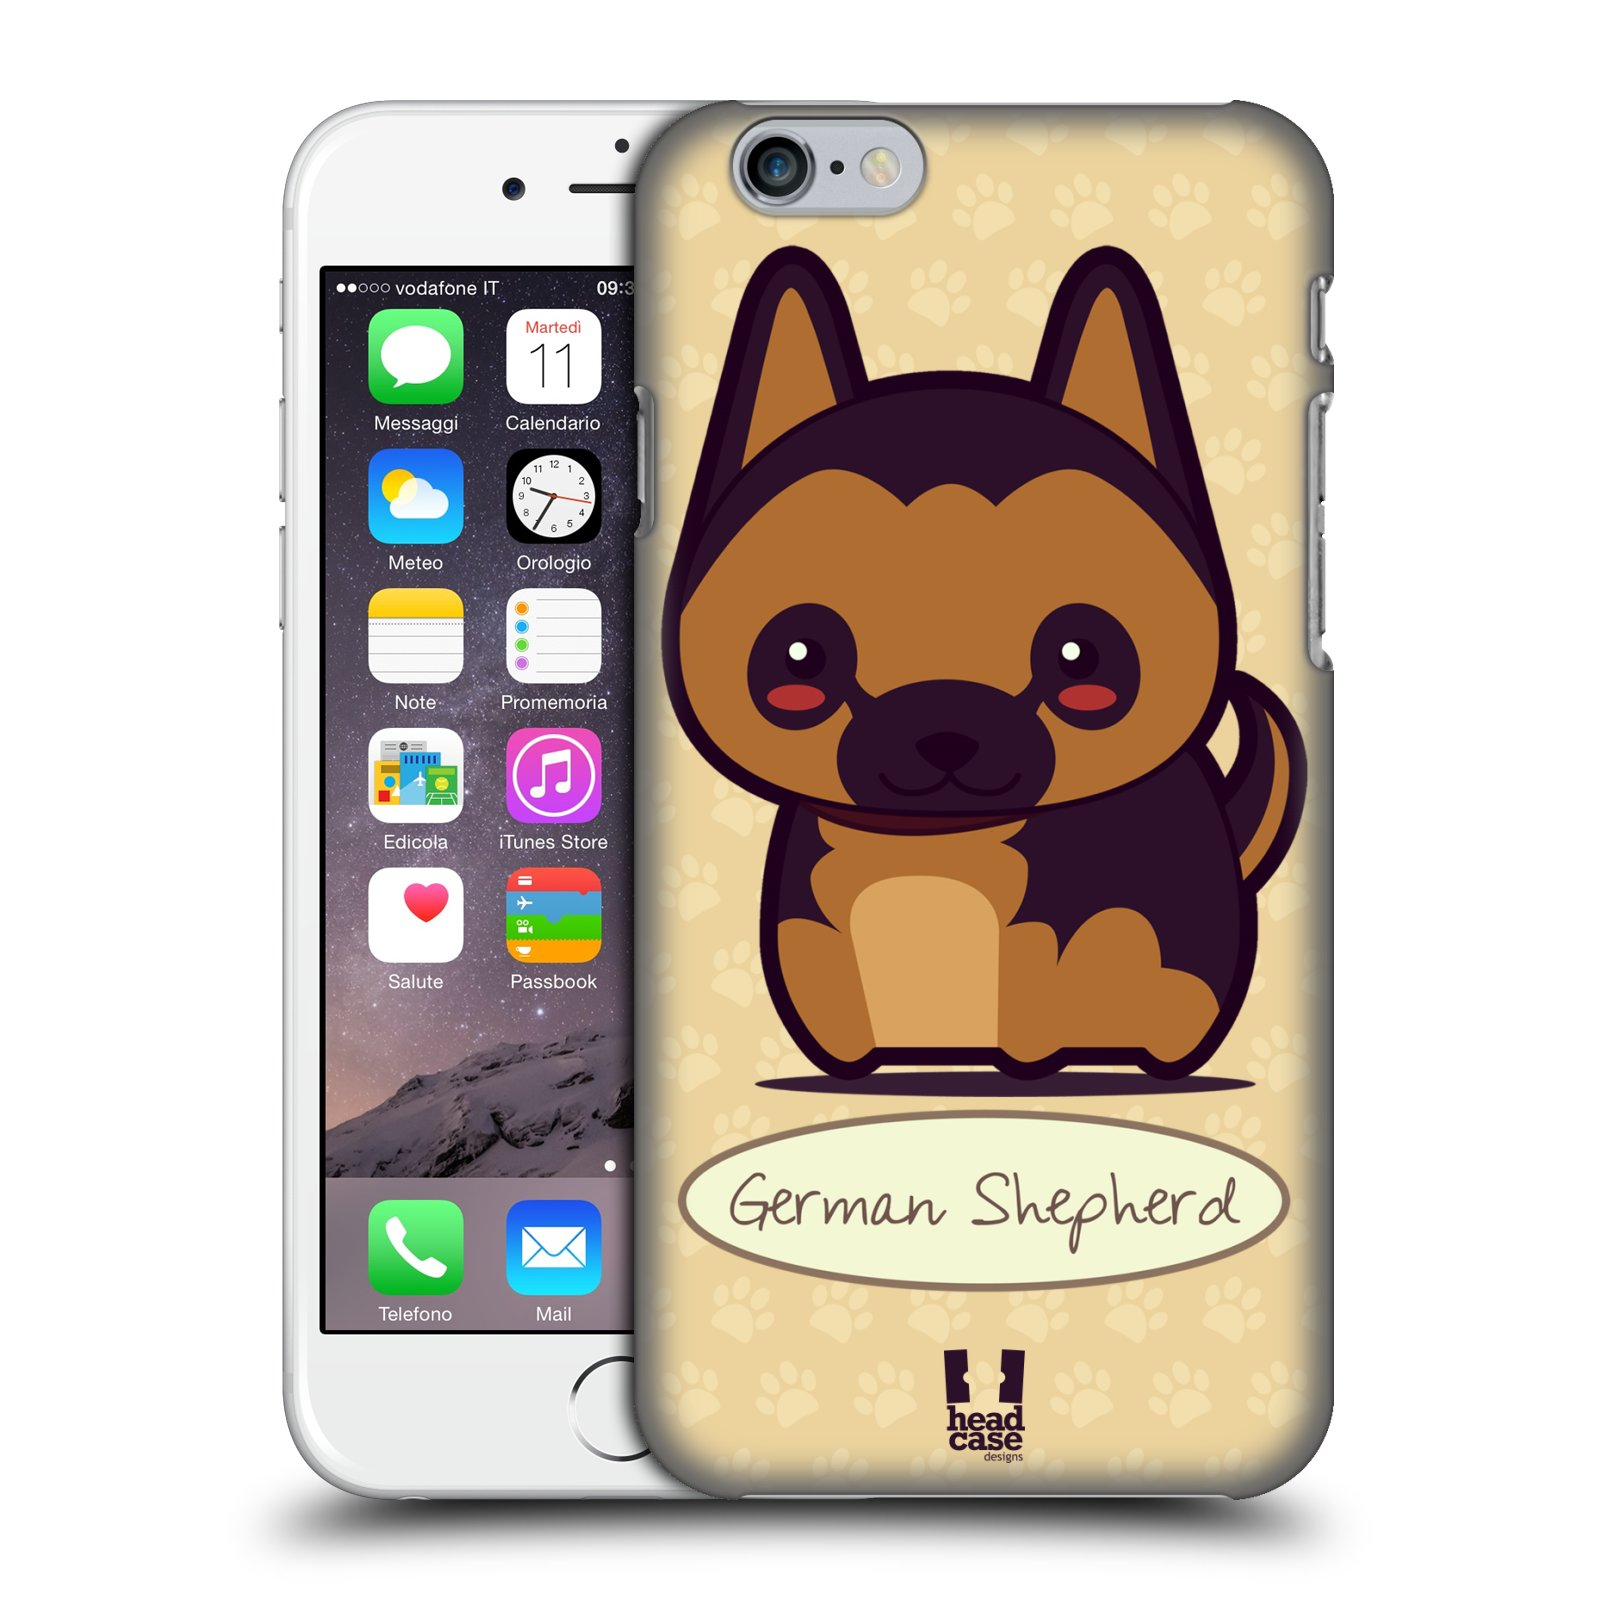 HEAD CASE DESIGNS WONDER DOGS CASE COVER FOR APPLE iPHONE 6 4.7